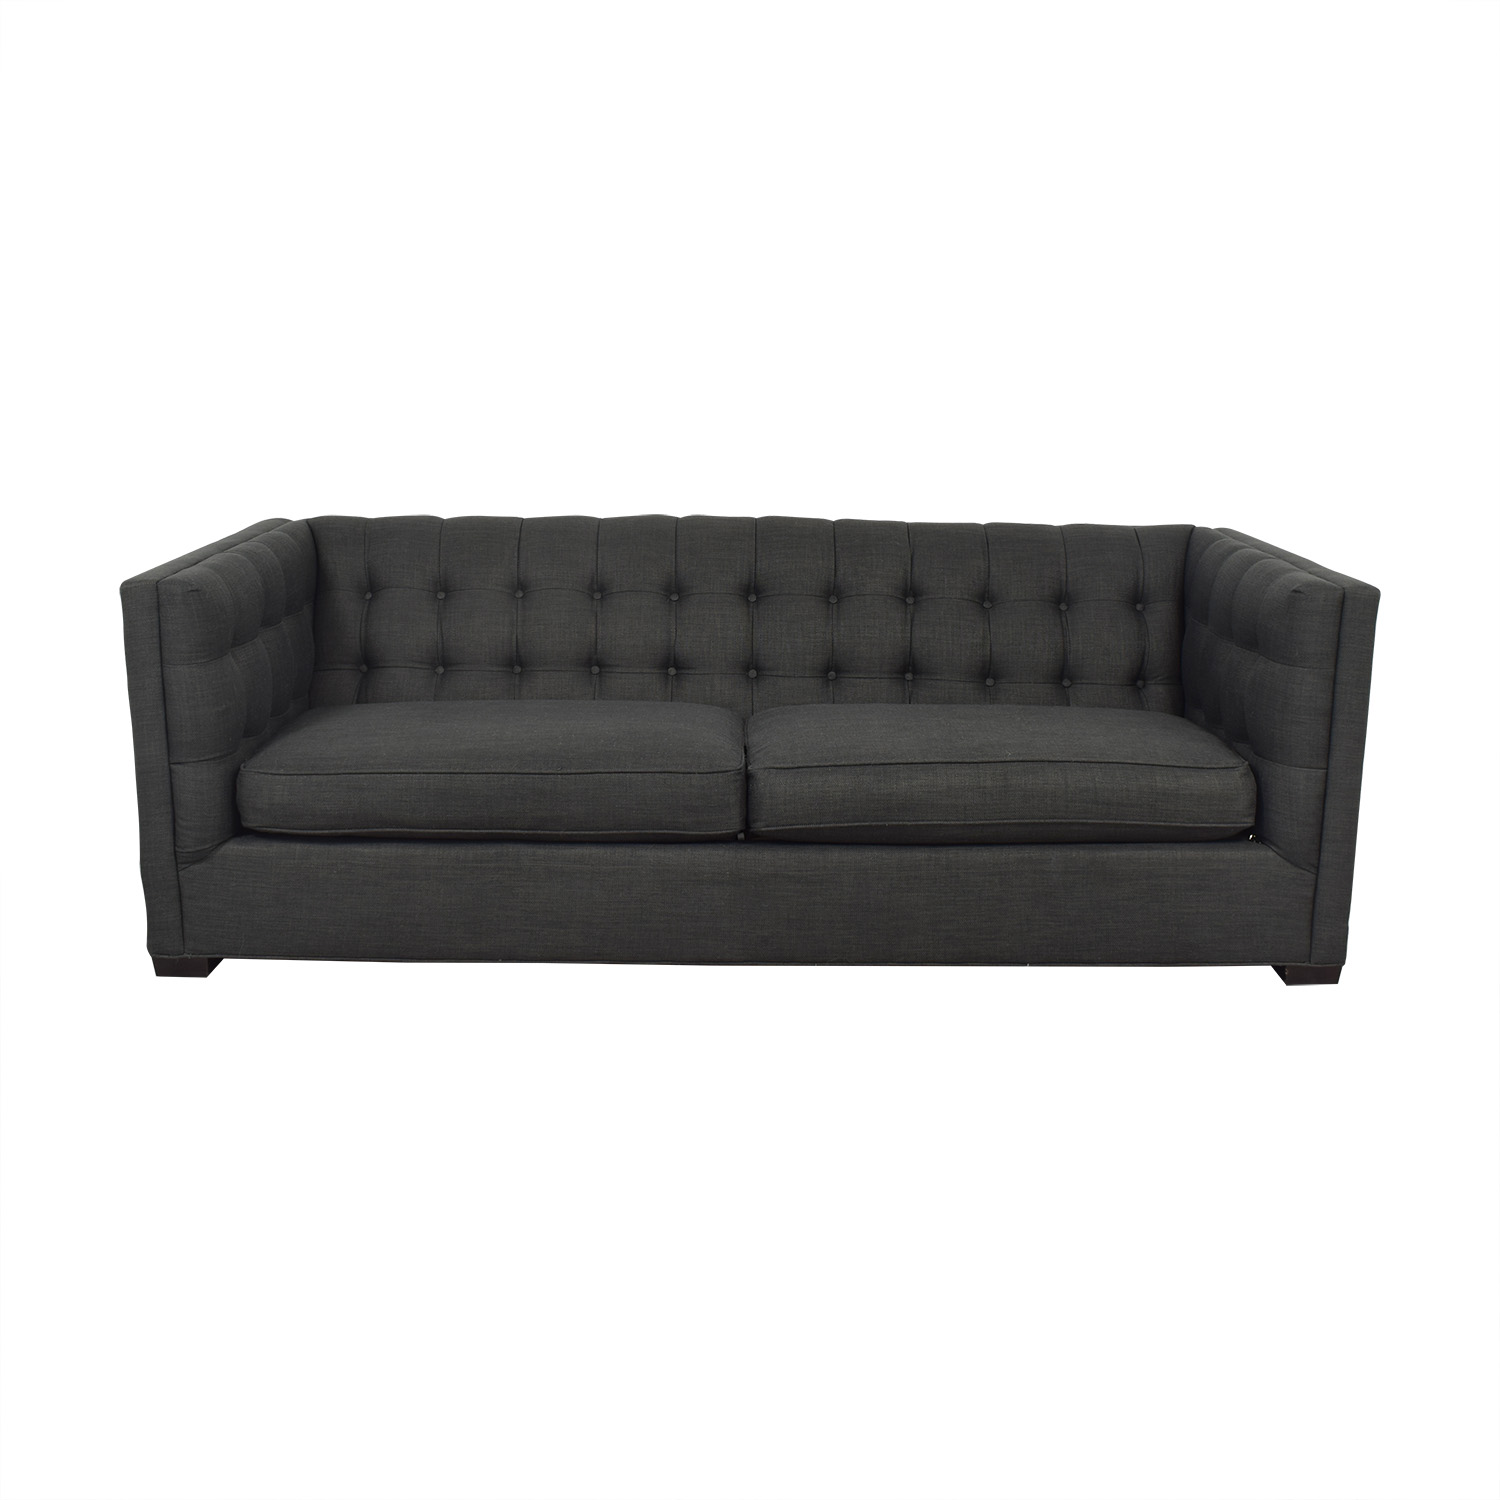 Raymour & Flanigan Raymour & Flanigan Tufted Tuxedo Sofa for sale